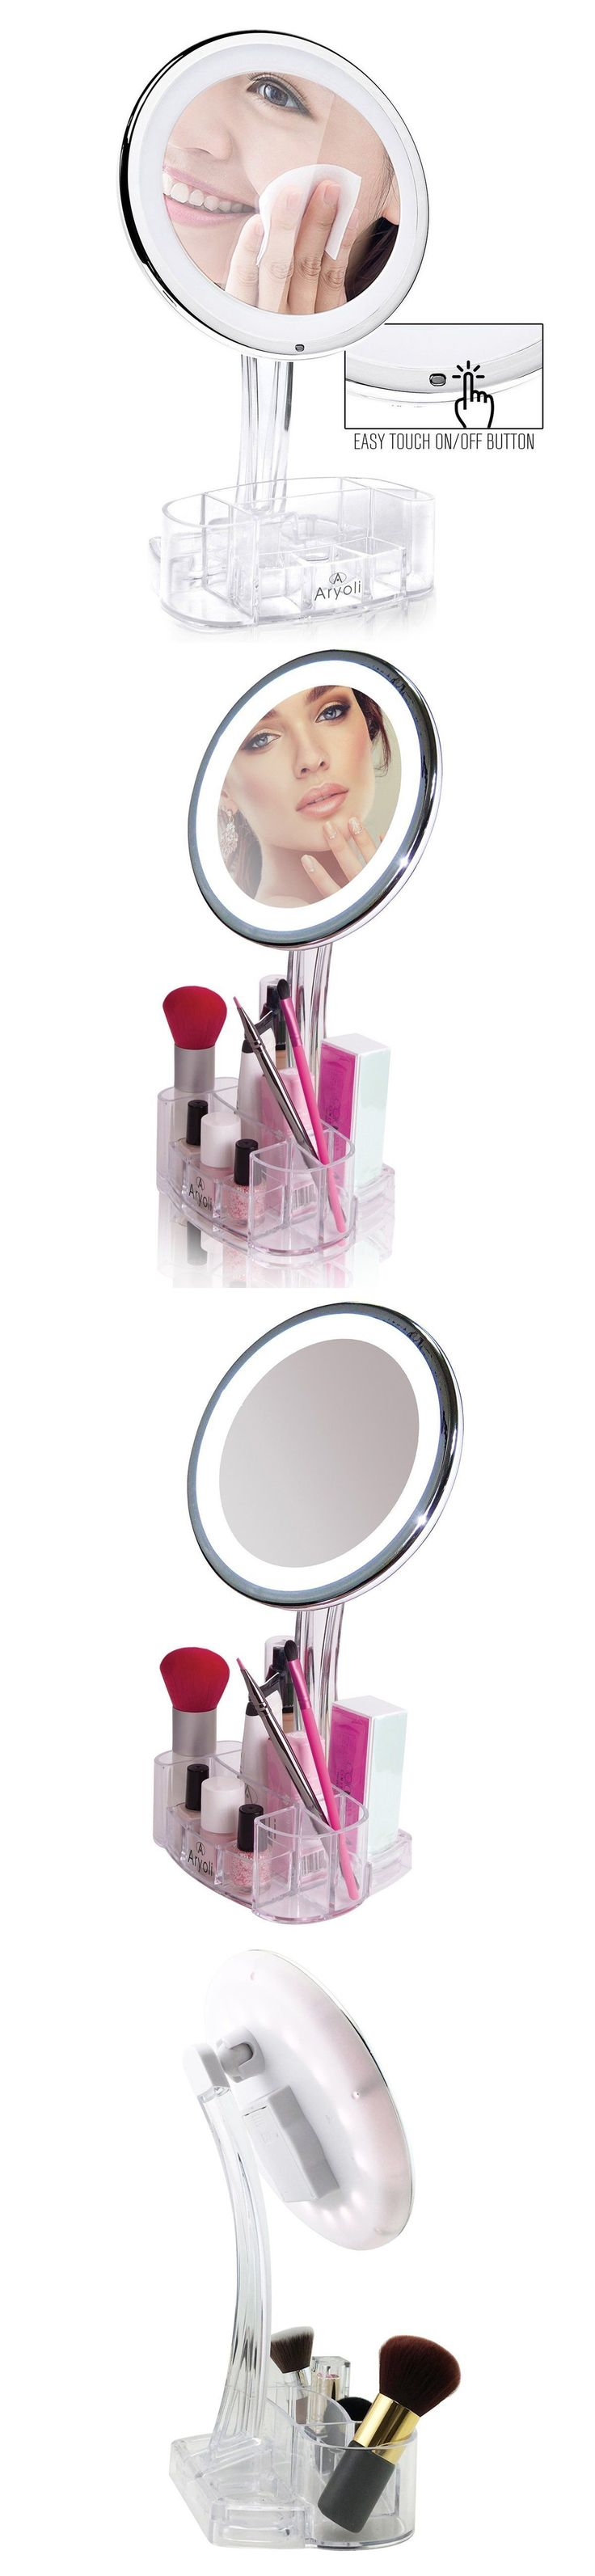 Diy Vanity Led Lights : 17 Best ideas about Makeup Vanity Lighting on Pinterest Vanity ideas, Diy makeup vanity and ...